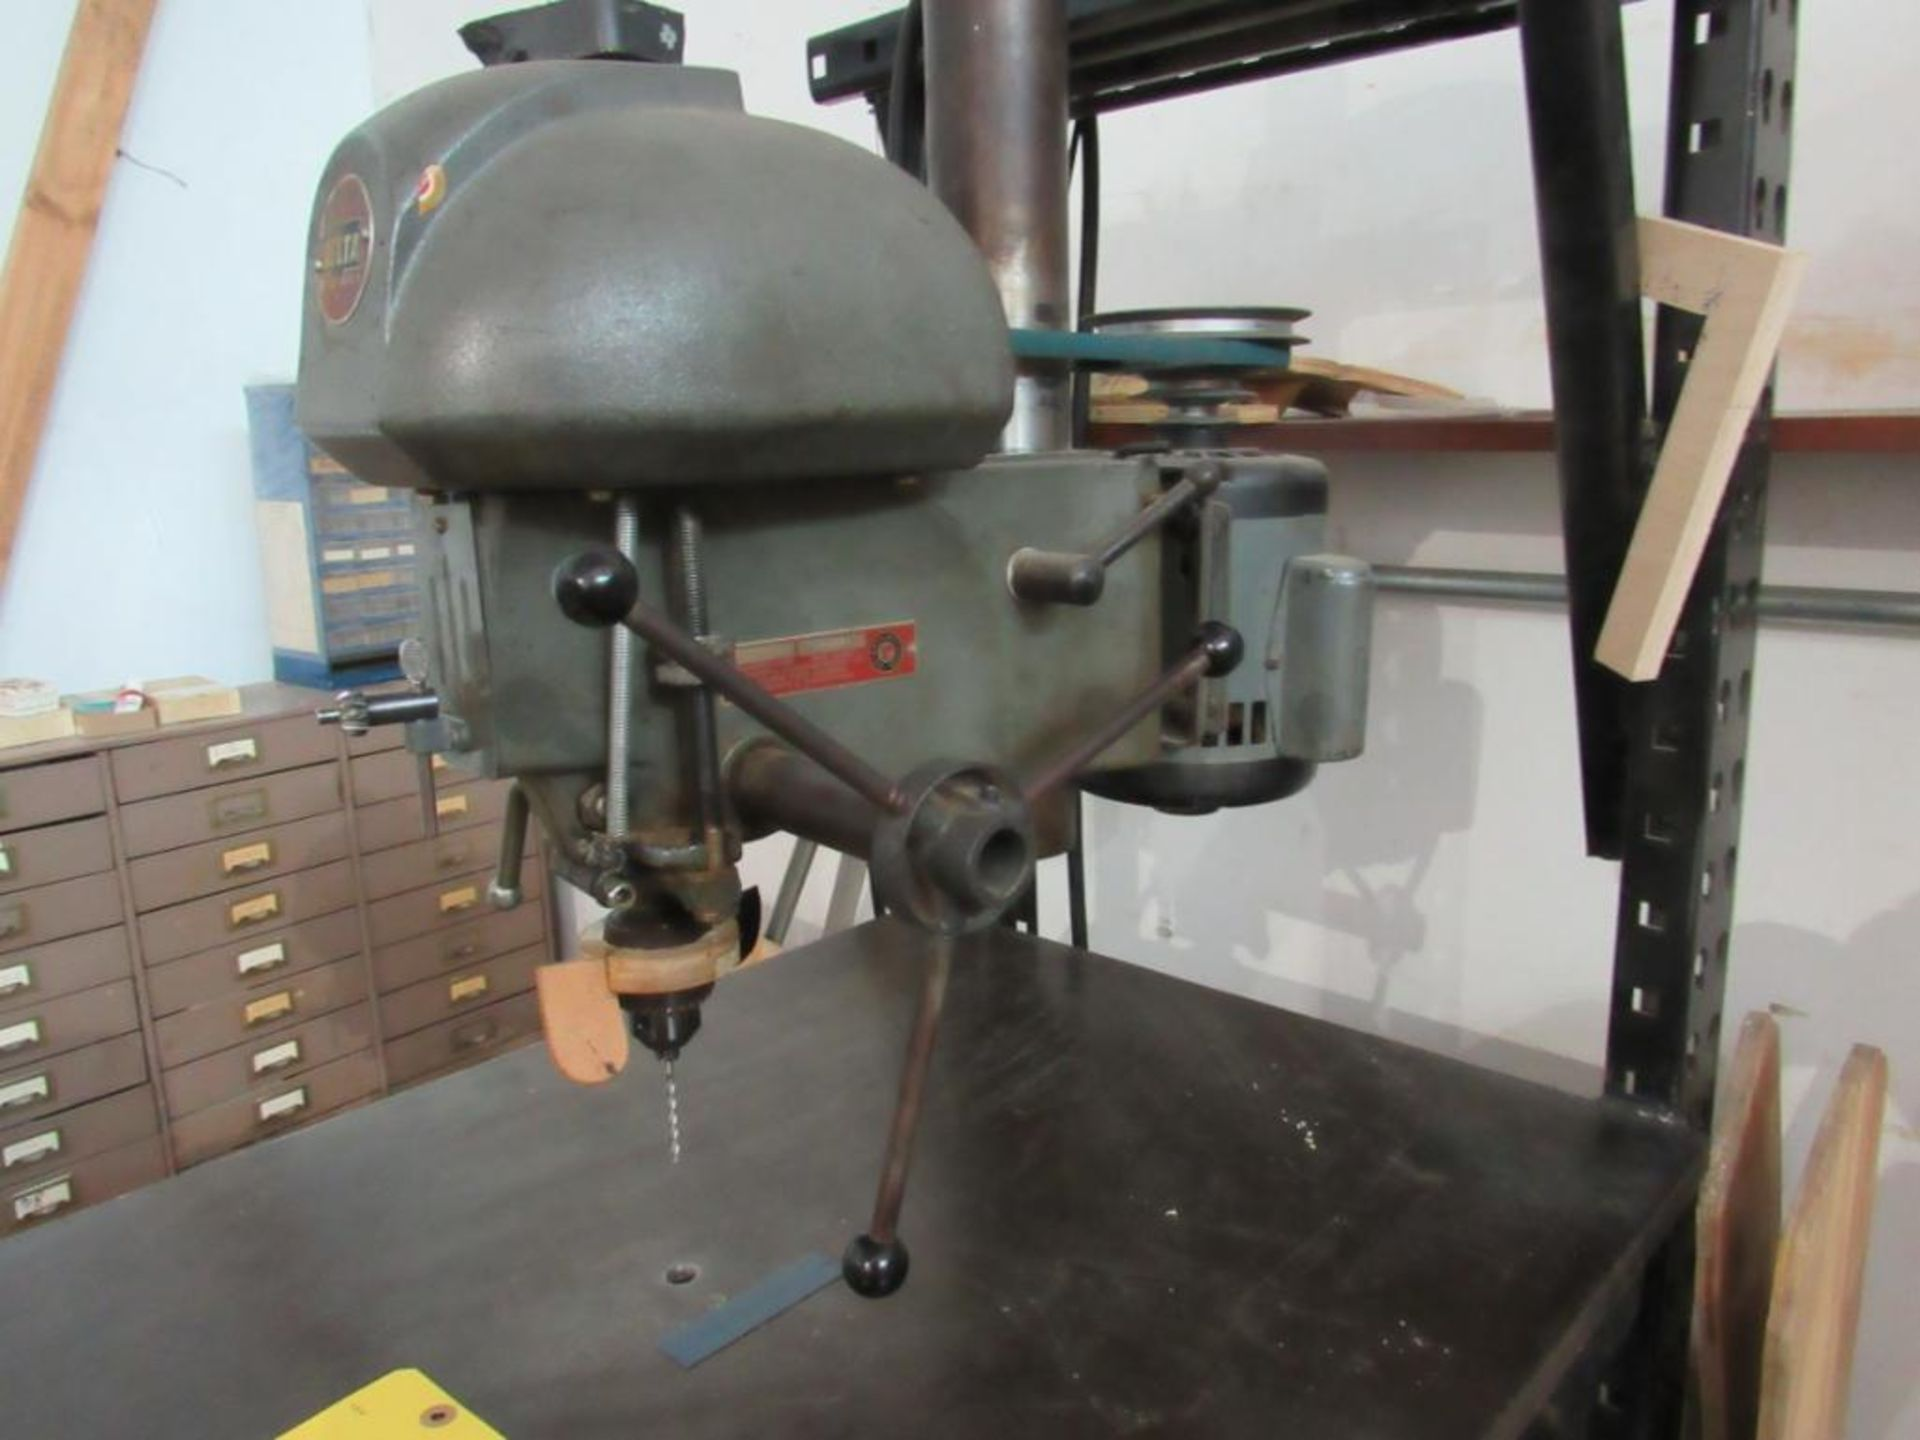 Delta 14 in. Drill Mounted on Portable Custom Table, 30 in. x 24 in. - Image 2 of 2